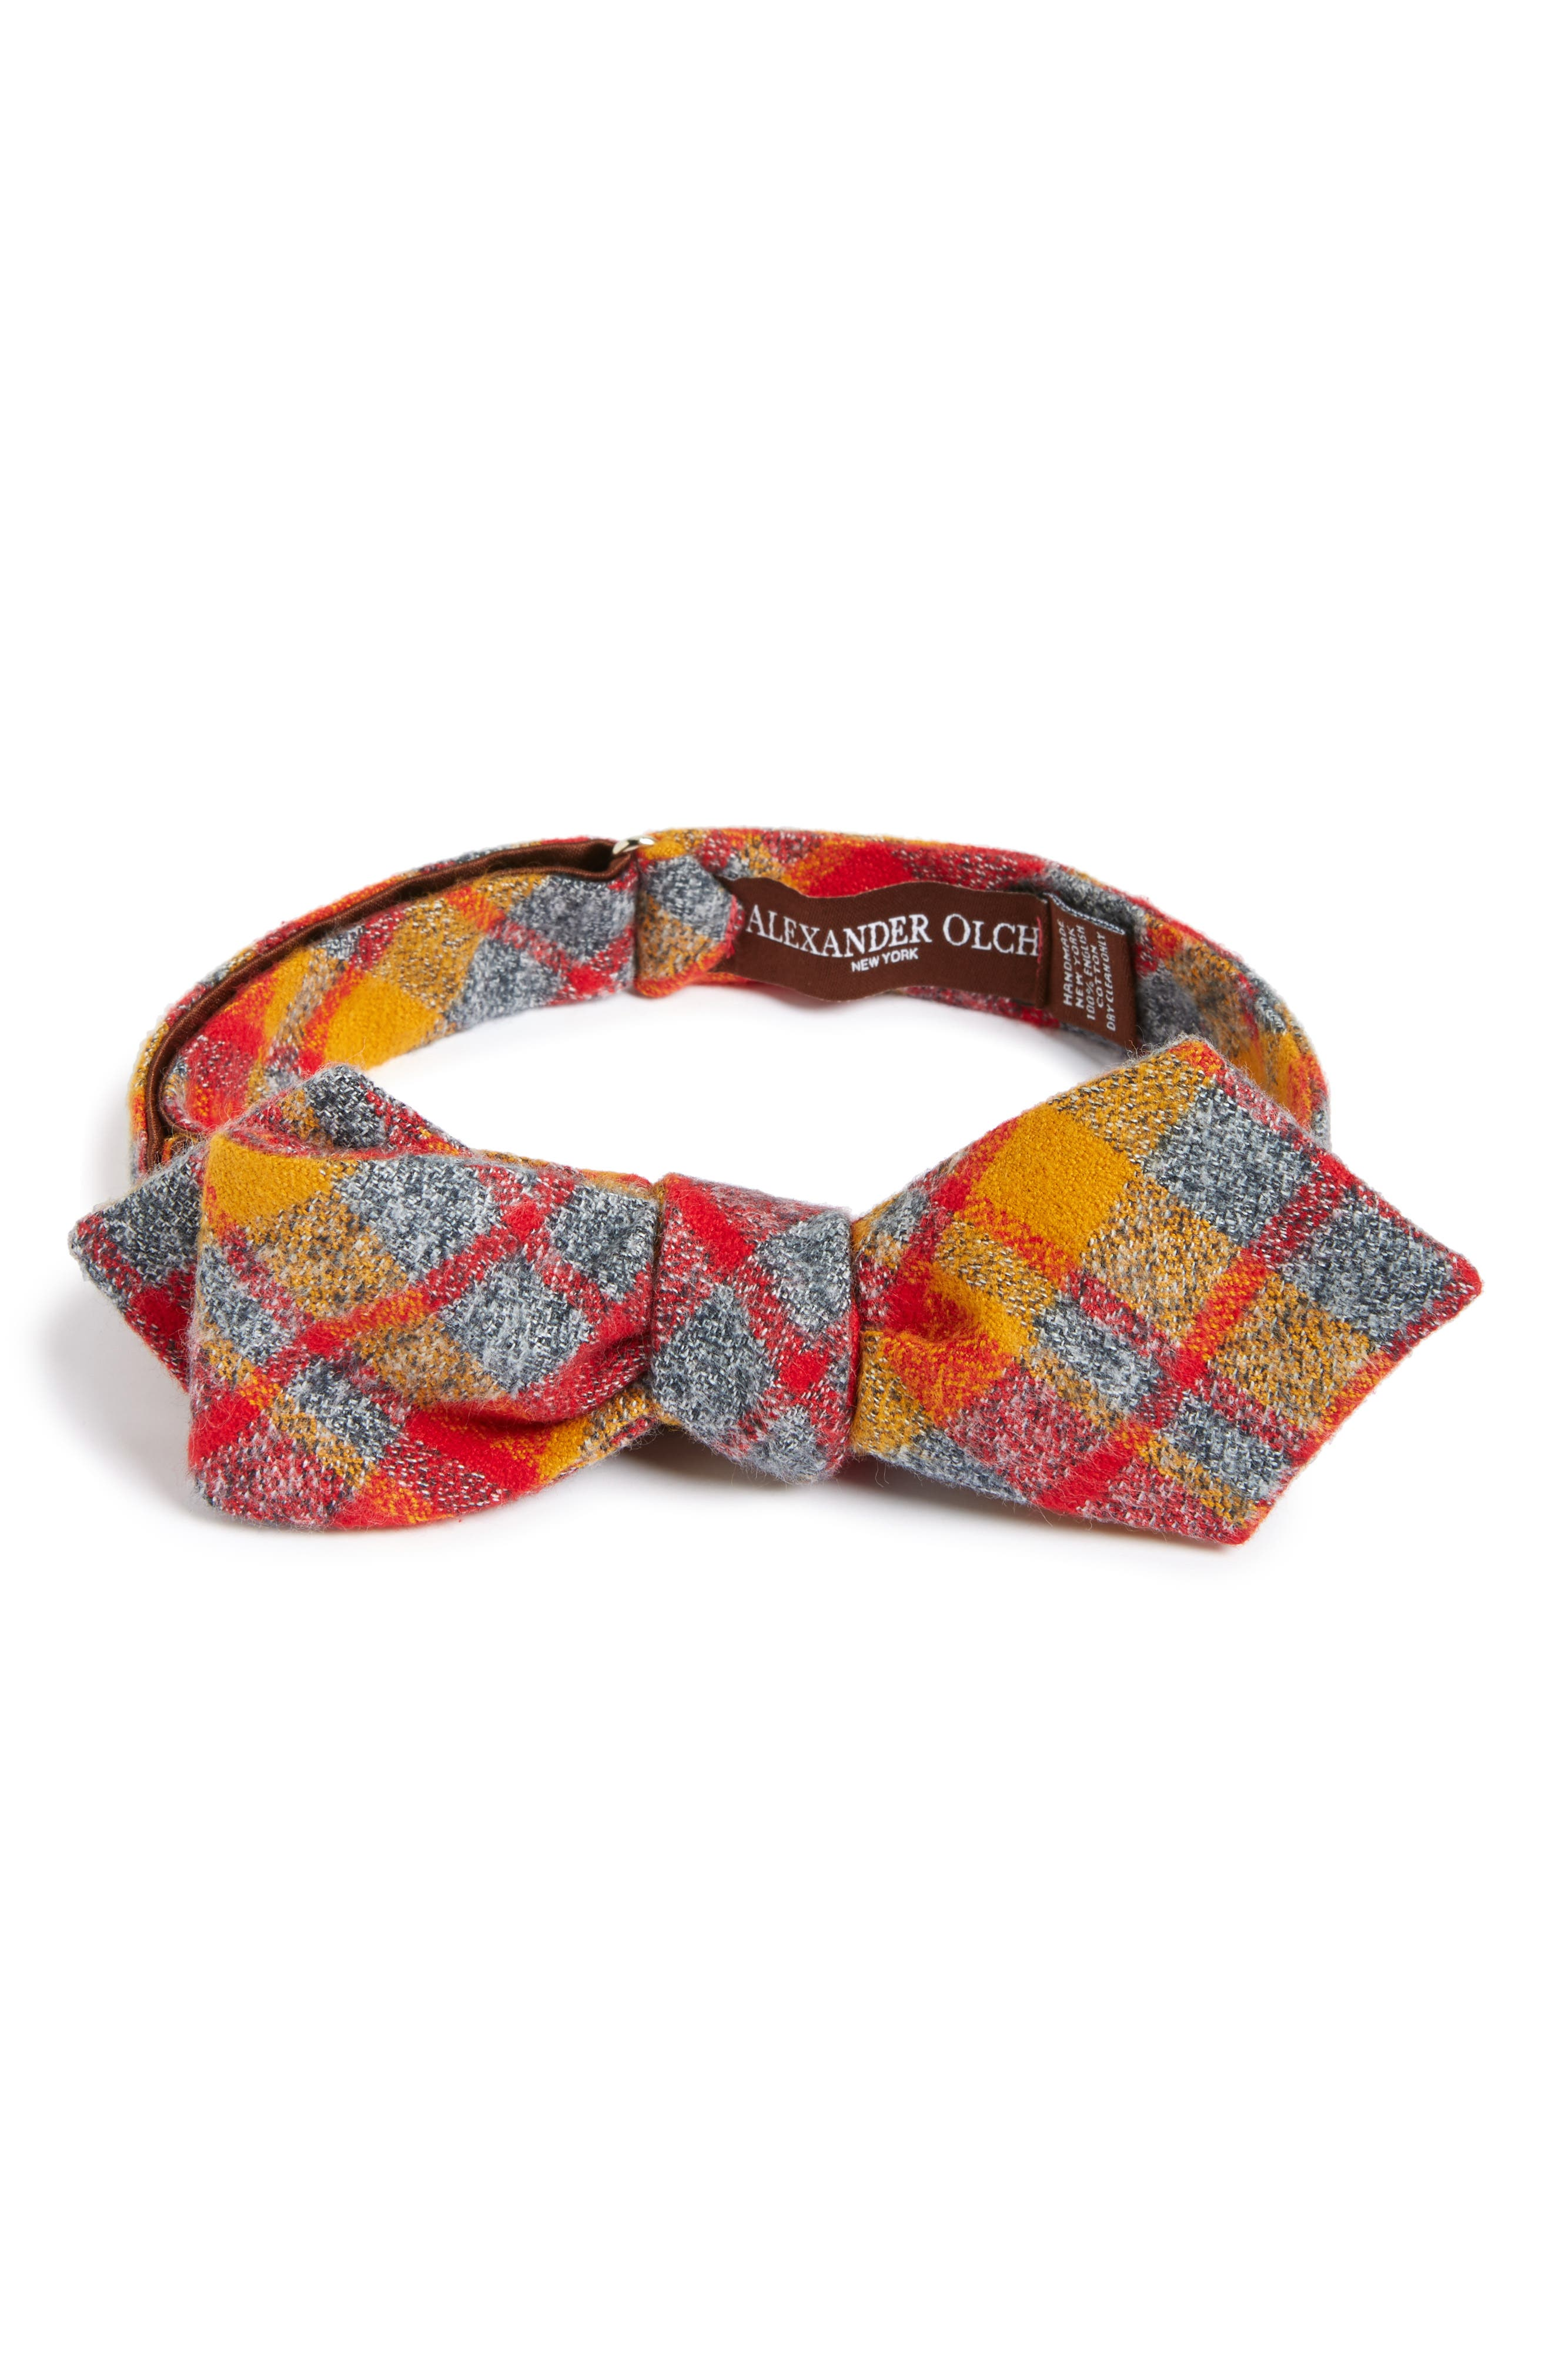 ALEXANDER OLCH Plaid Cotton Flannel Bow Tie